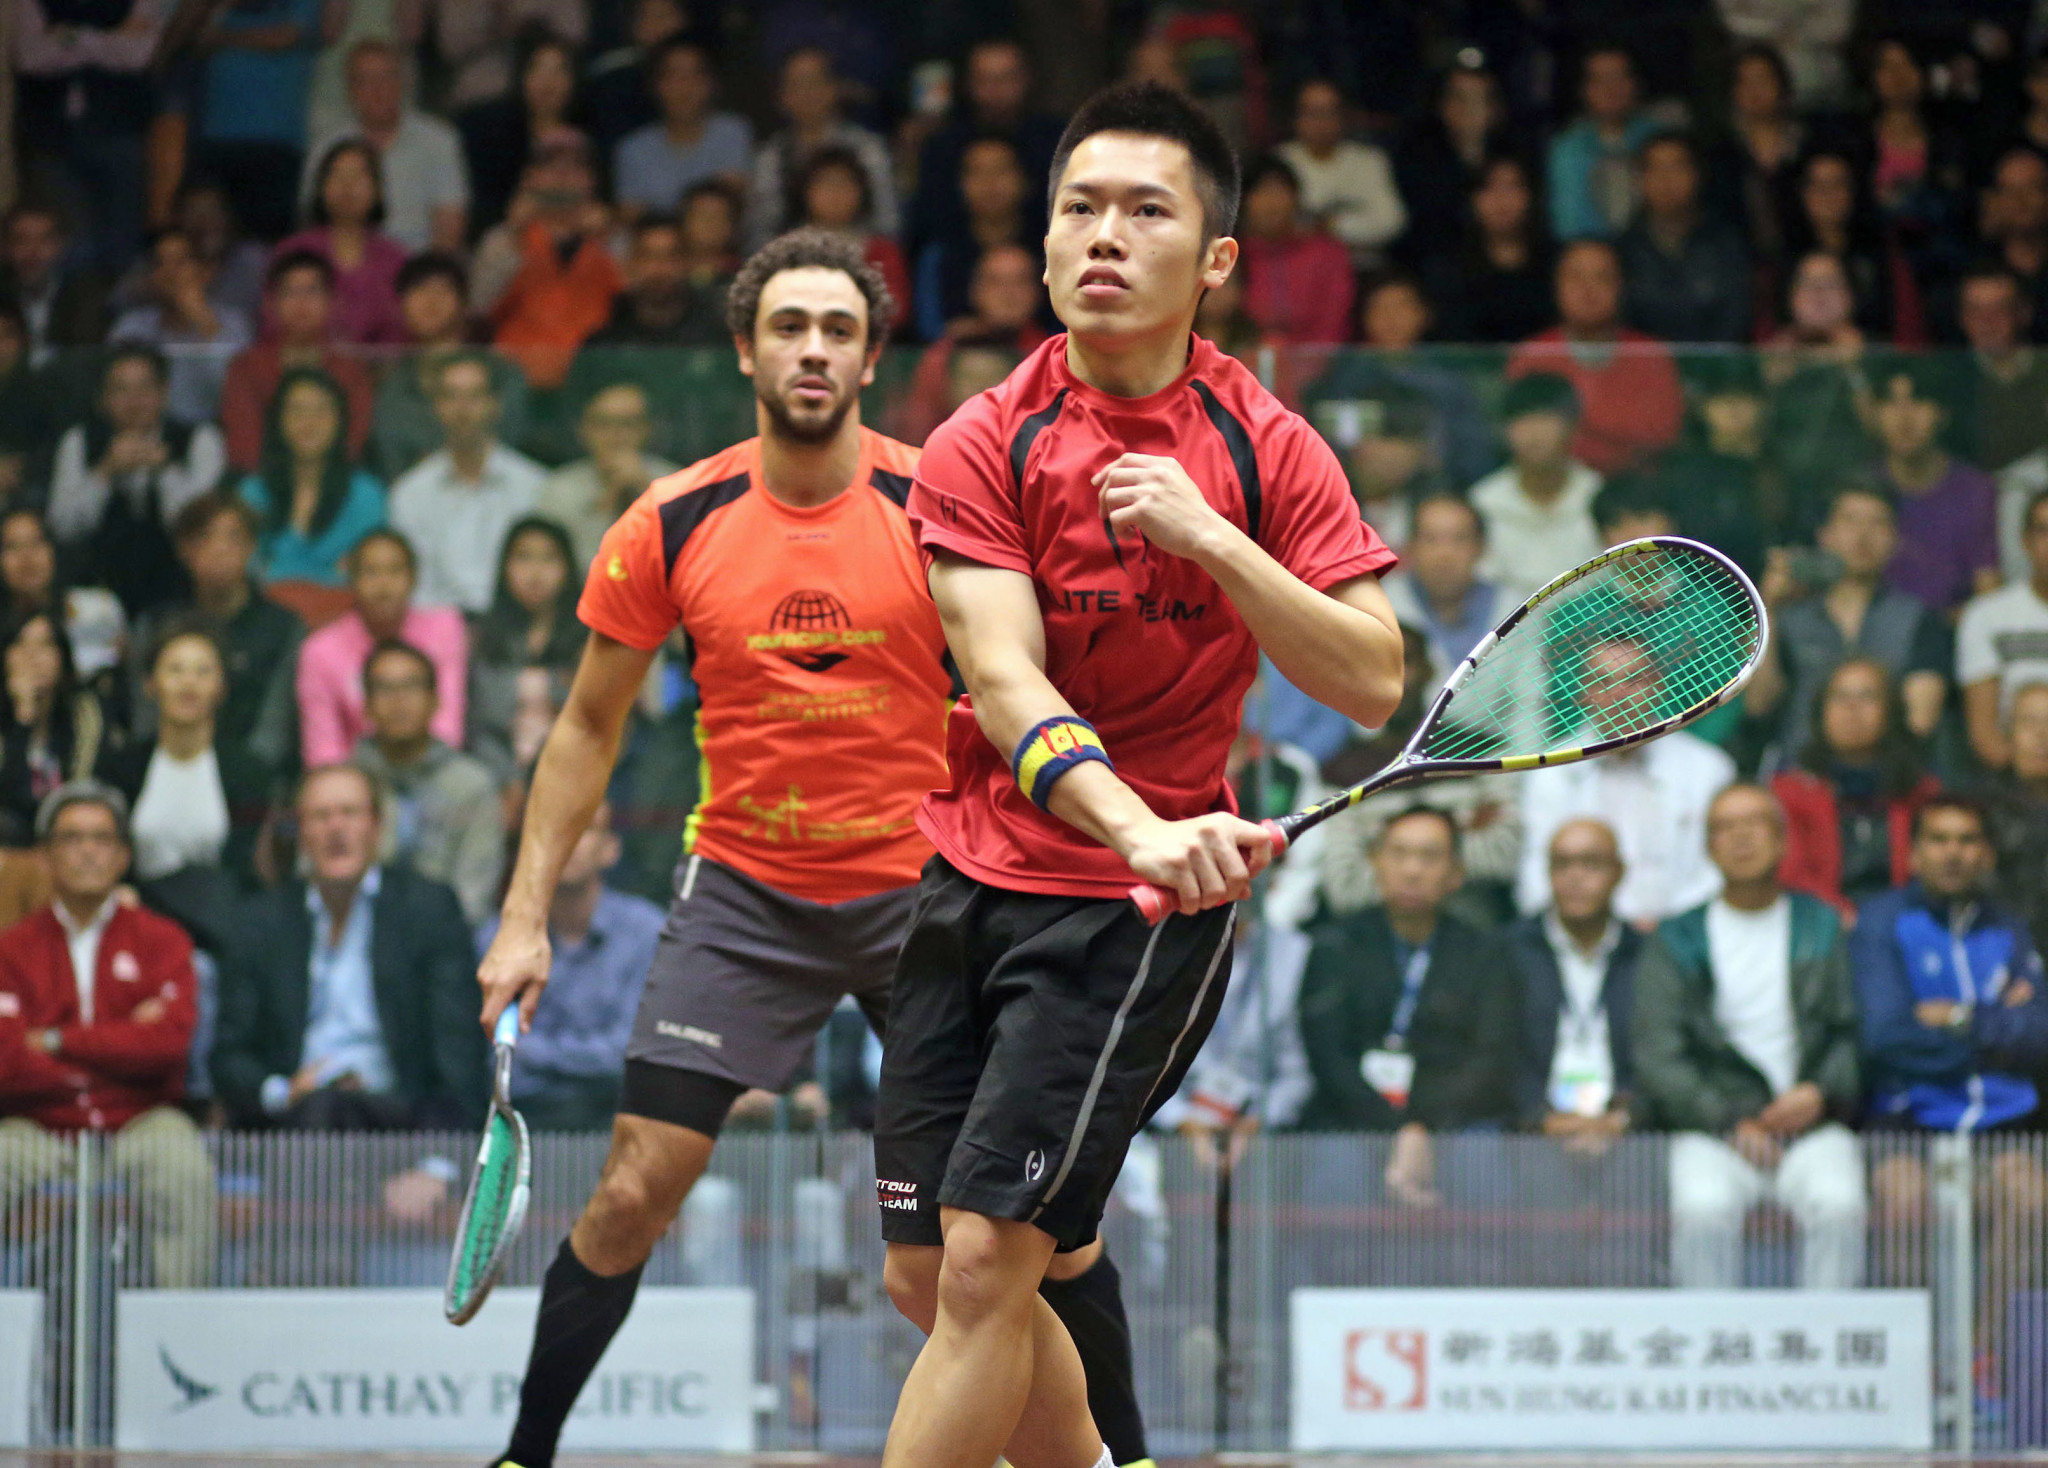 Wildcard Au stuns defending champion Ashour at PSA Hong Kong Open